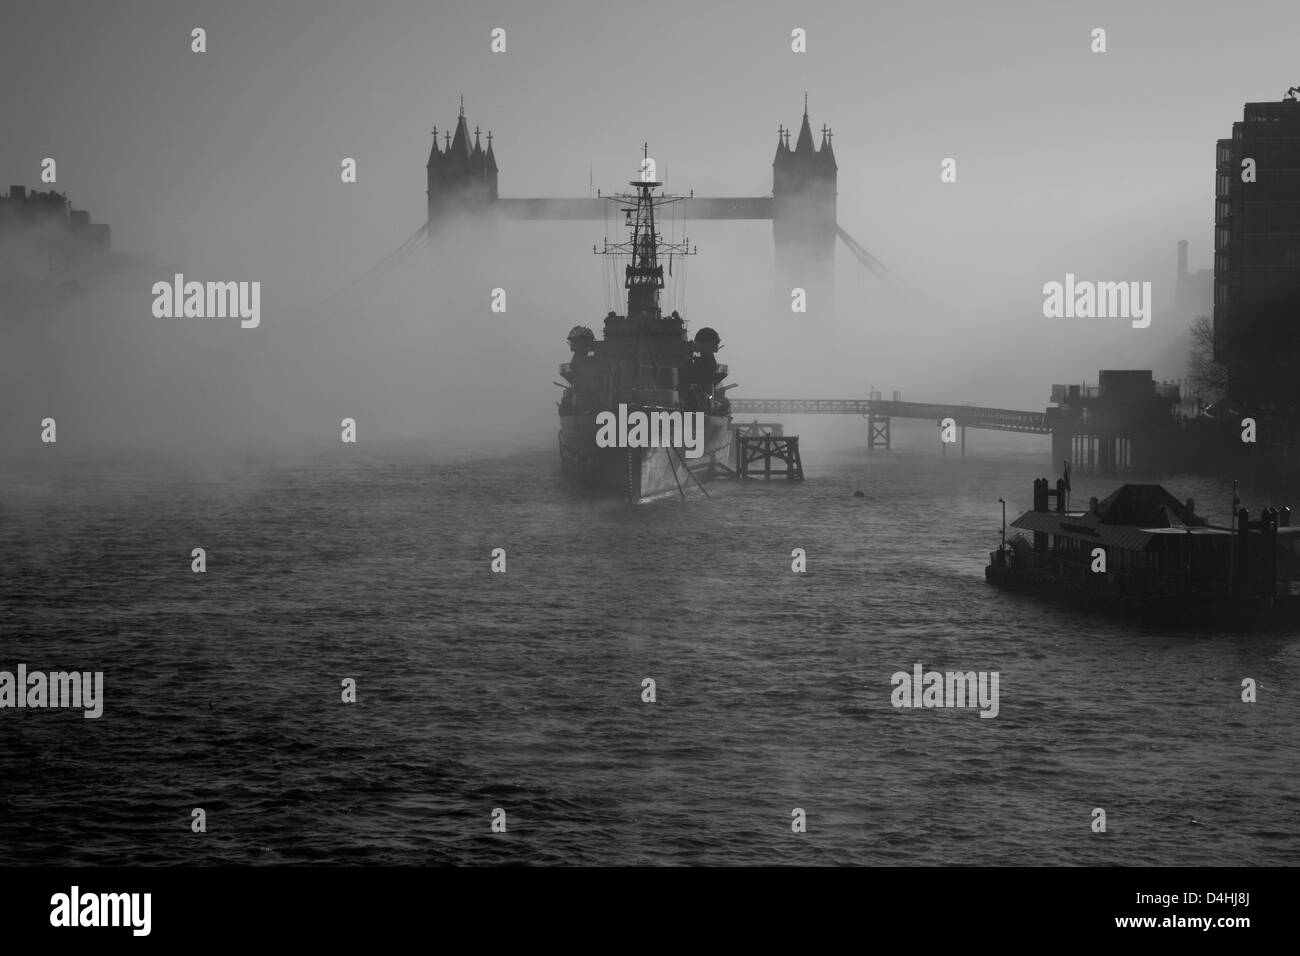 View down the River Thames to a fog-shrouded Tower Bridge and HMS Belfast, City of London, UK - Stock Image